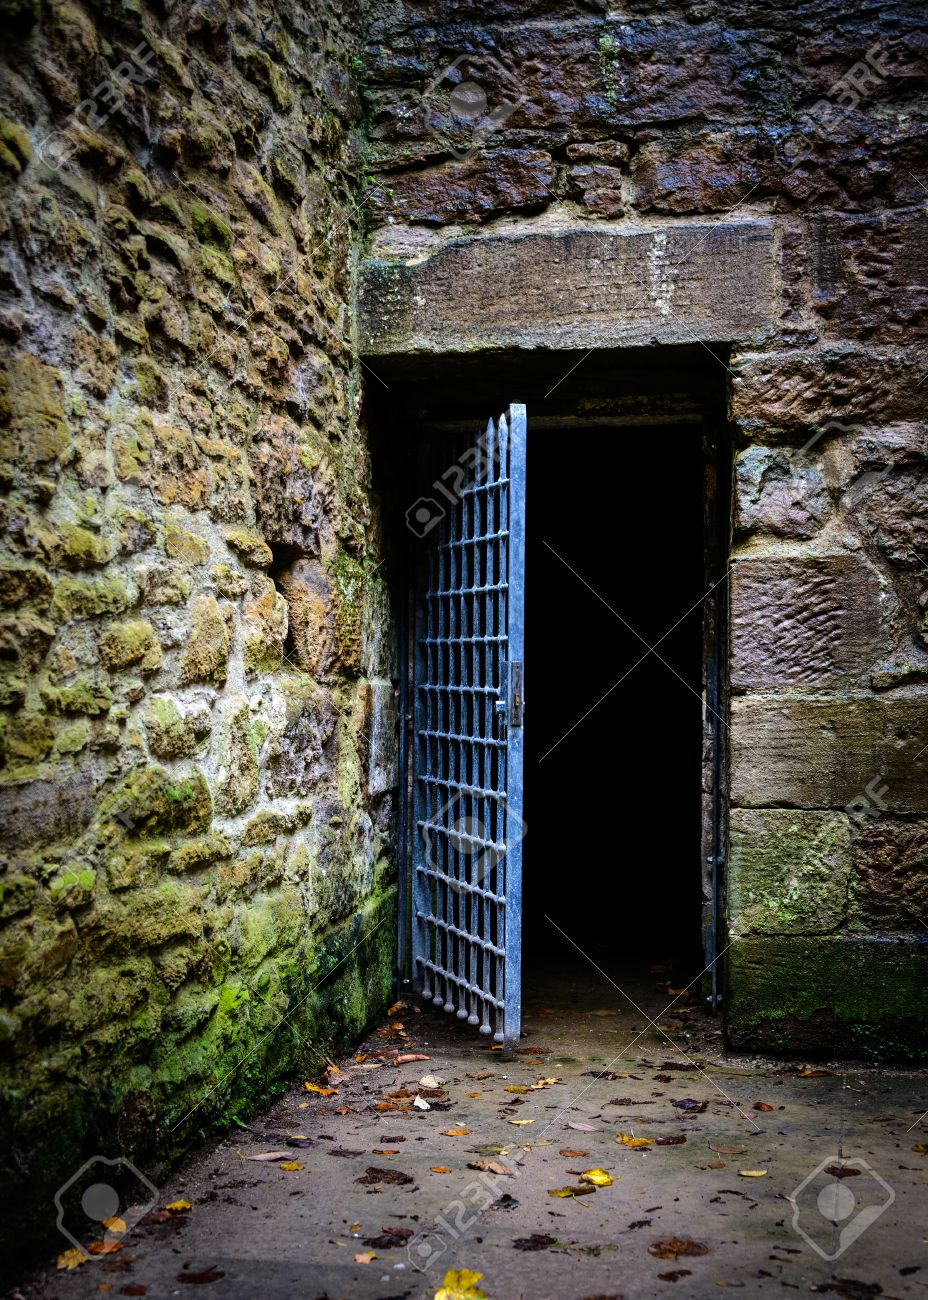 Opened prison door in an old castle Stock Photo - 28916946 & Opened Prison Door In An Old Castle Stock Photo Picture And ... Pezcame.Com